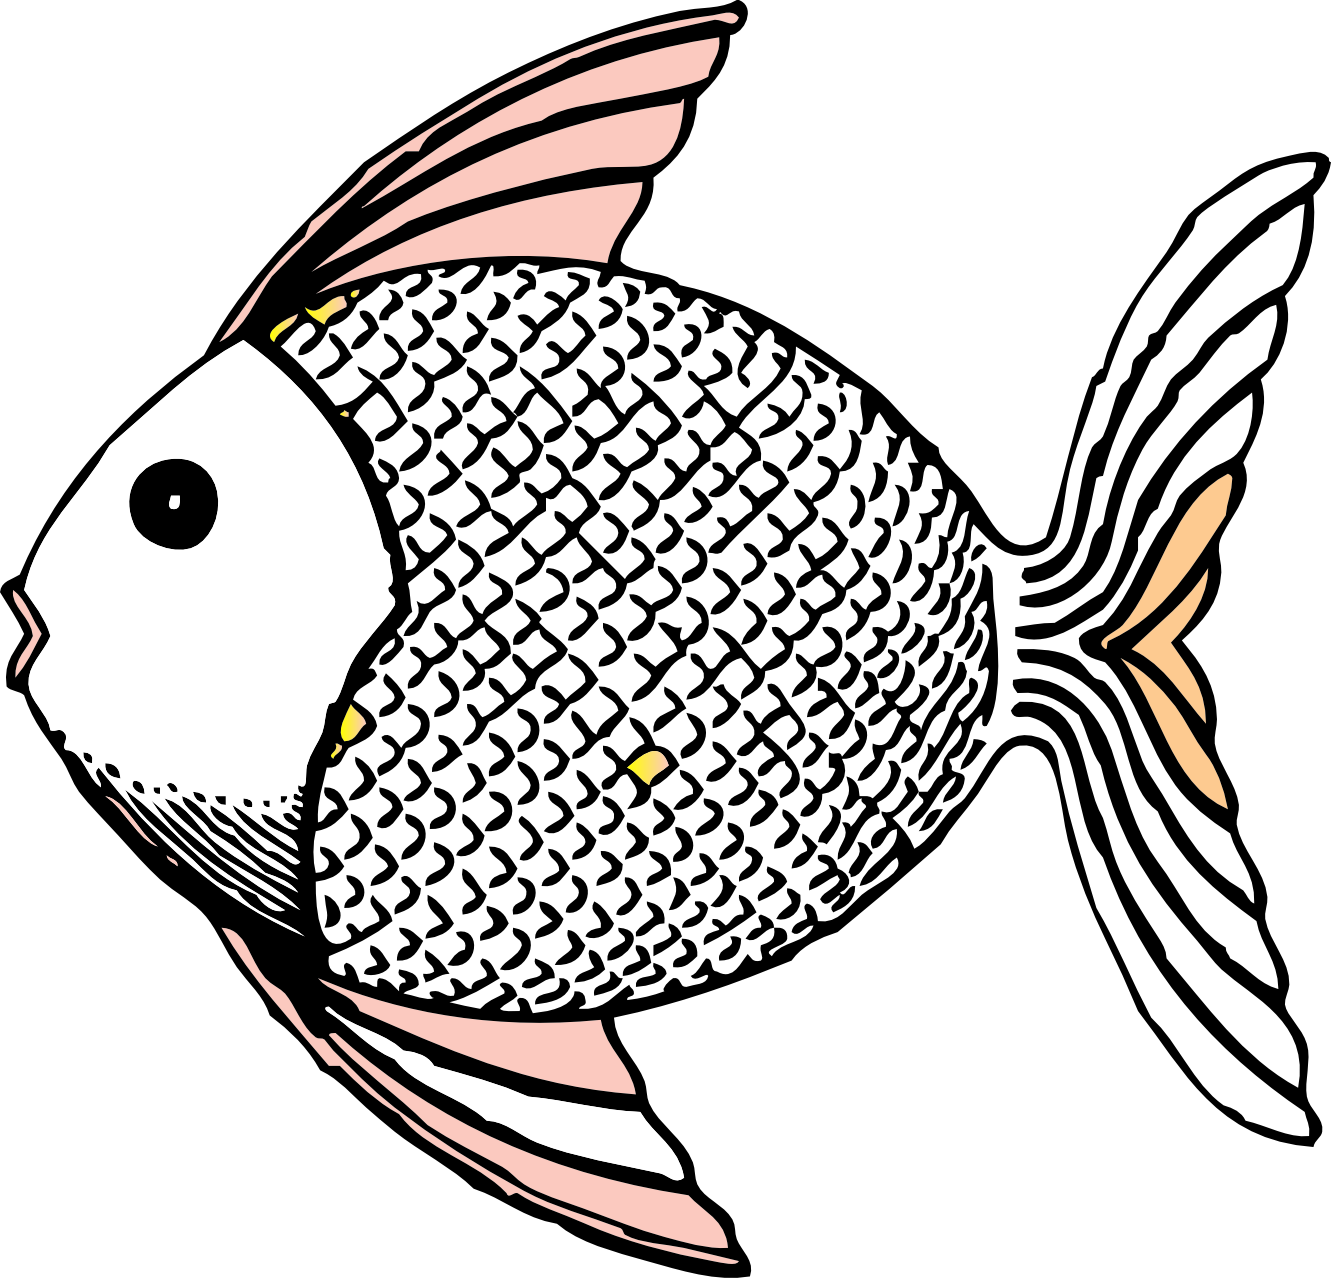 island-clip-art-black-and-white-tropical-fish-black-and-white-clipart    Island Clipart Black And White